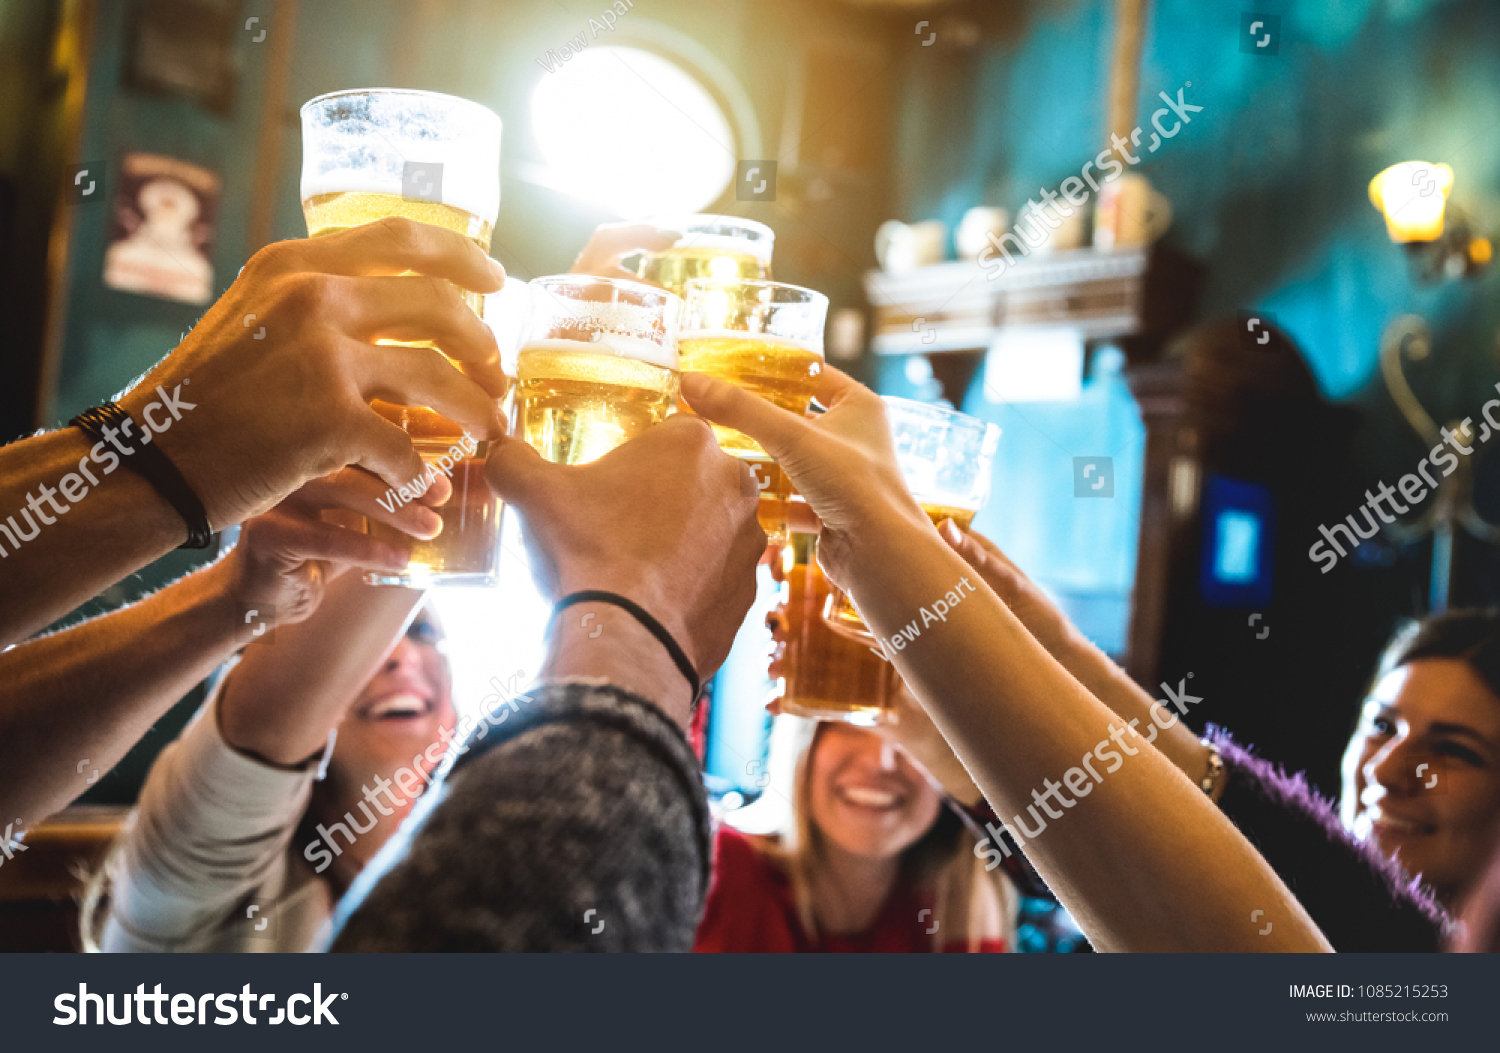 Group of happy friends drinking and toasting beer at brewery bar restaurant - Friendship concept with young people having fun together at cool vintage pub - Focus on middle pint glass - High iso image #1085215253